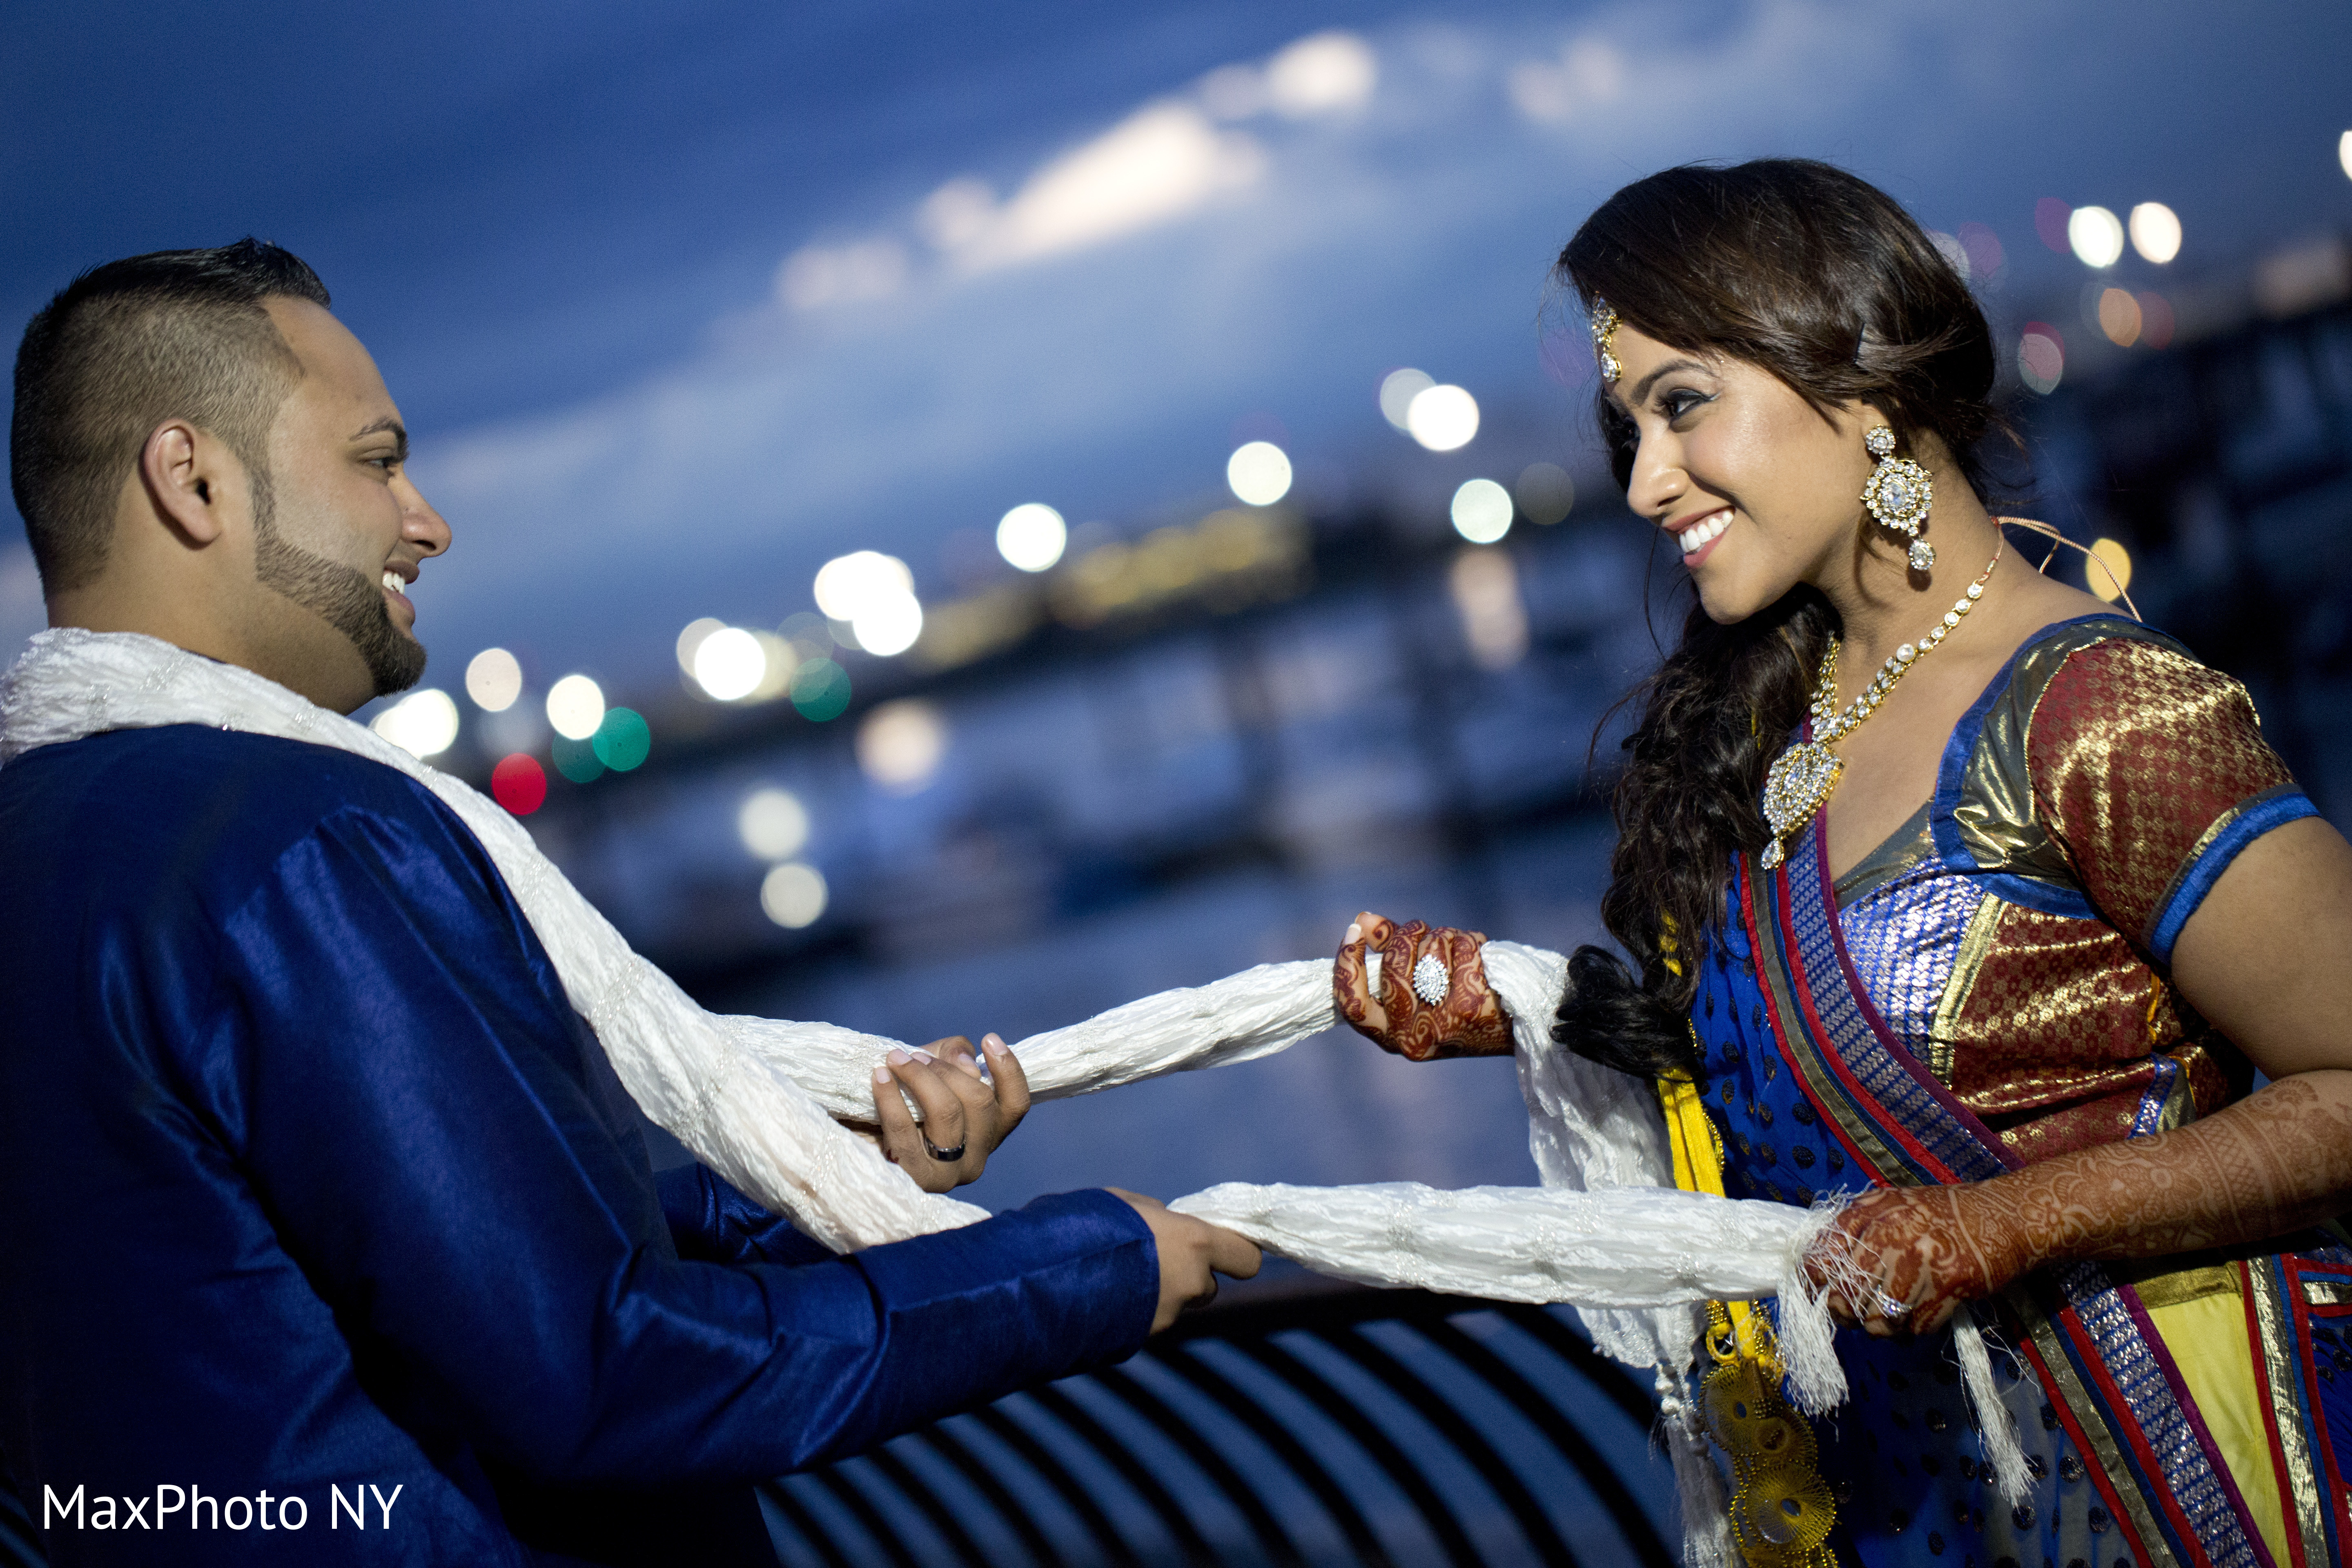 Portraits in woodside ny indian wedding by maxphoto ny for Indian jewelry in schaumburg il